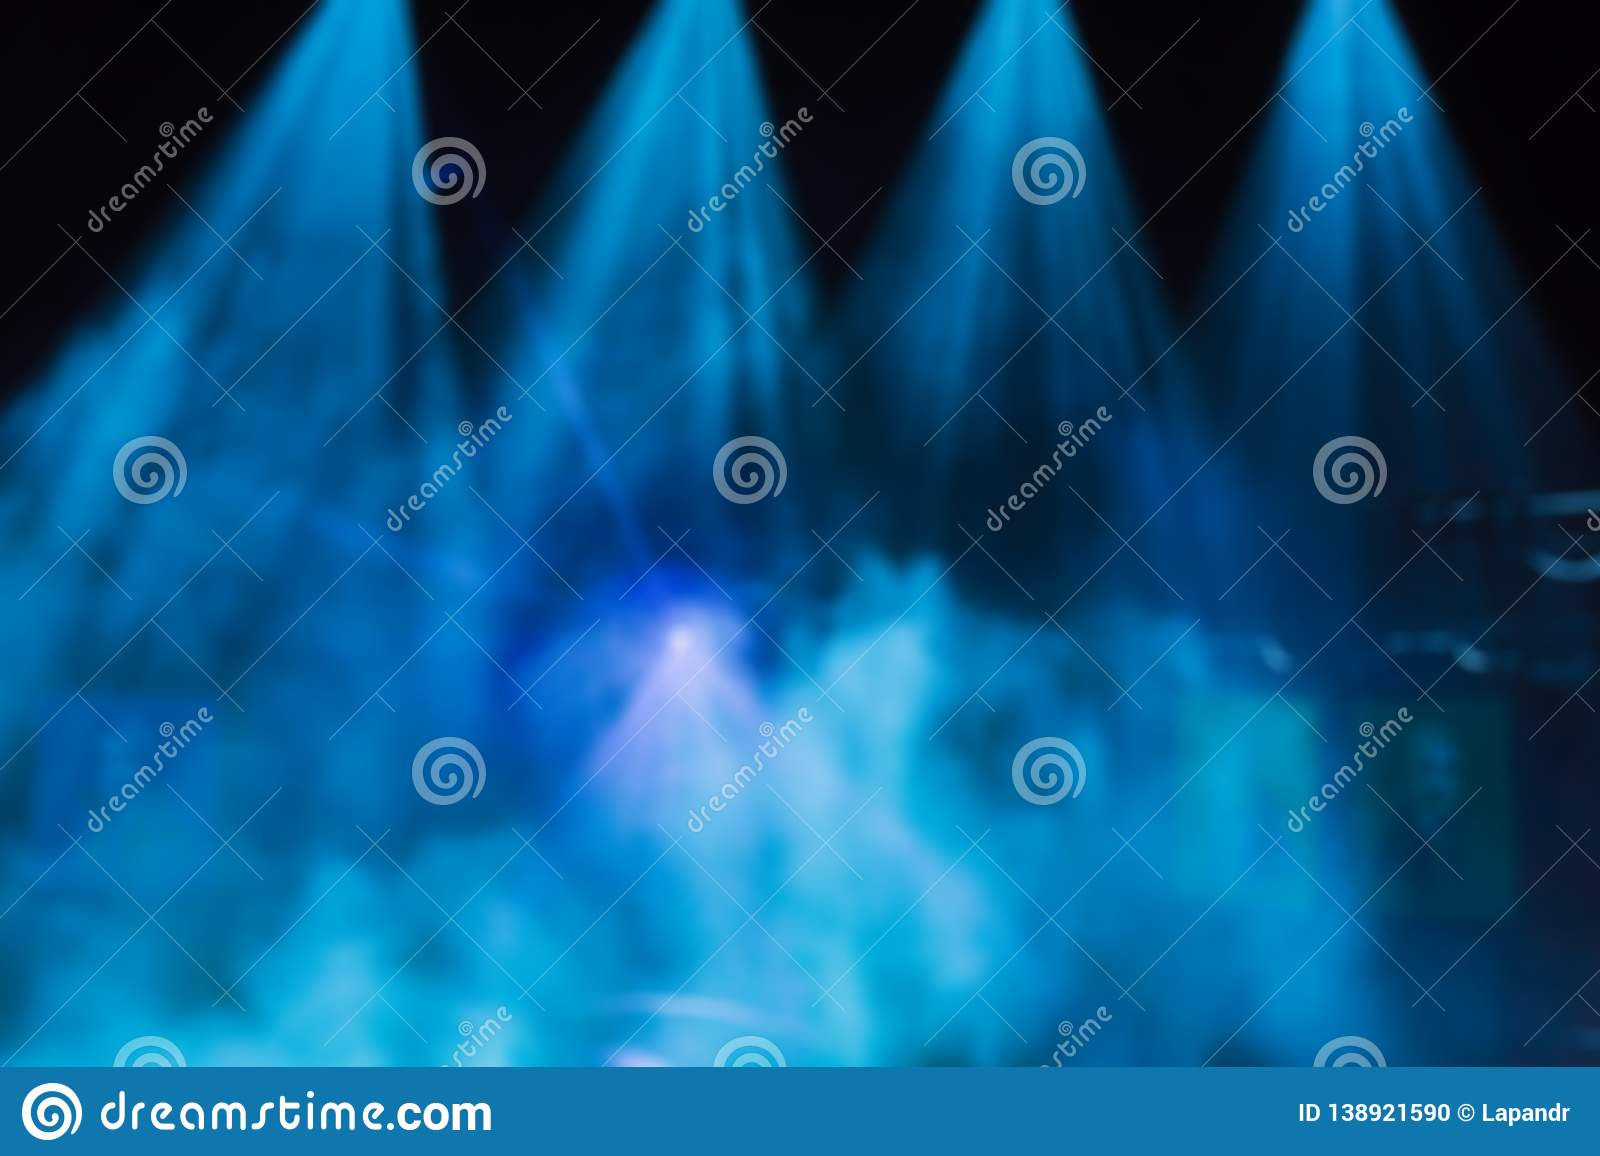 Blue rays of light from the spotlights through the smoke on the stage. Theatrical performance. Defocused abstract image